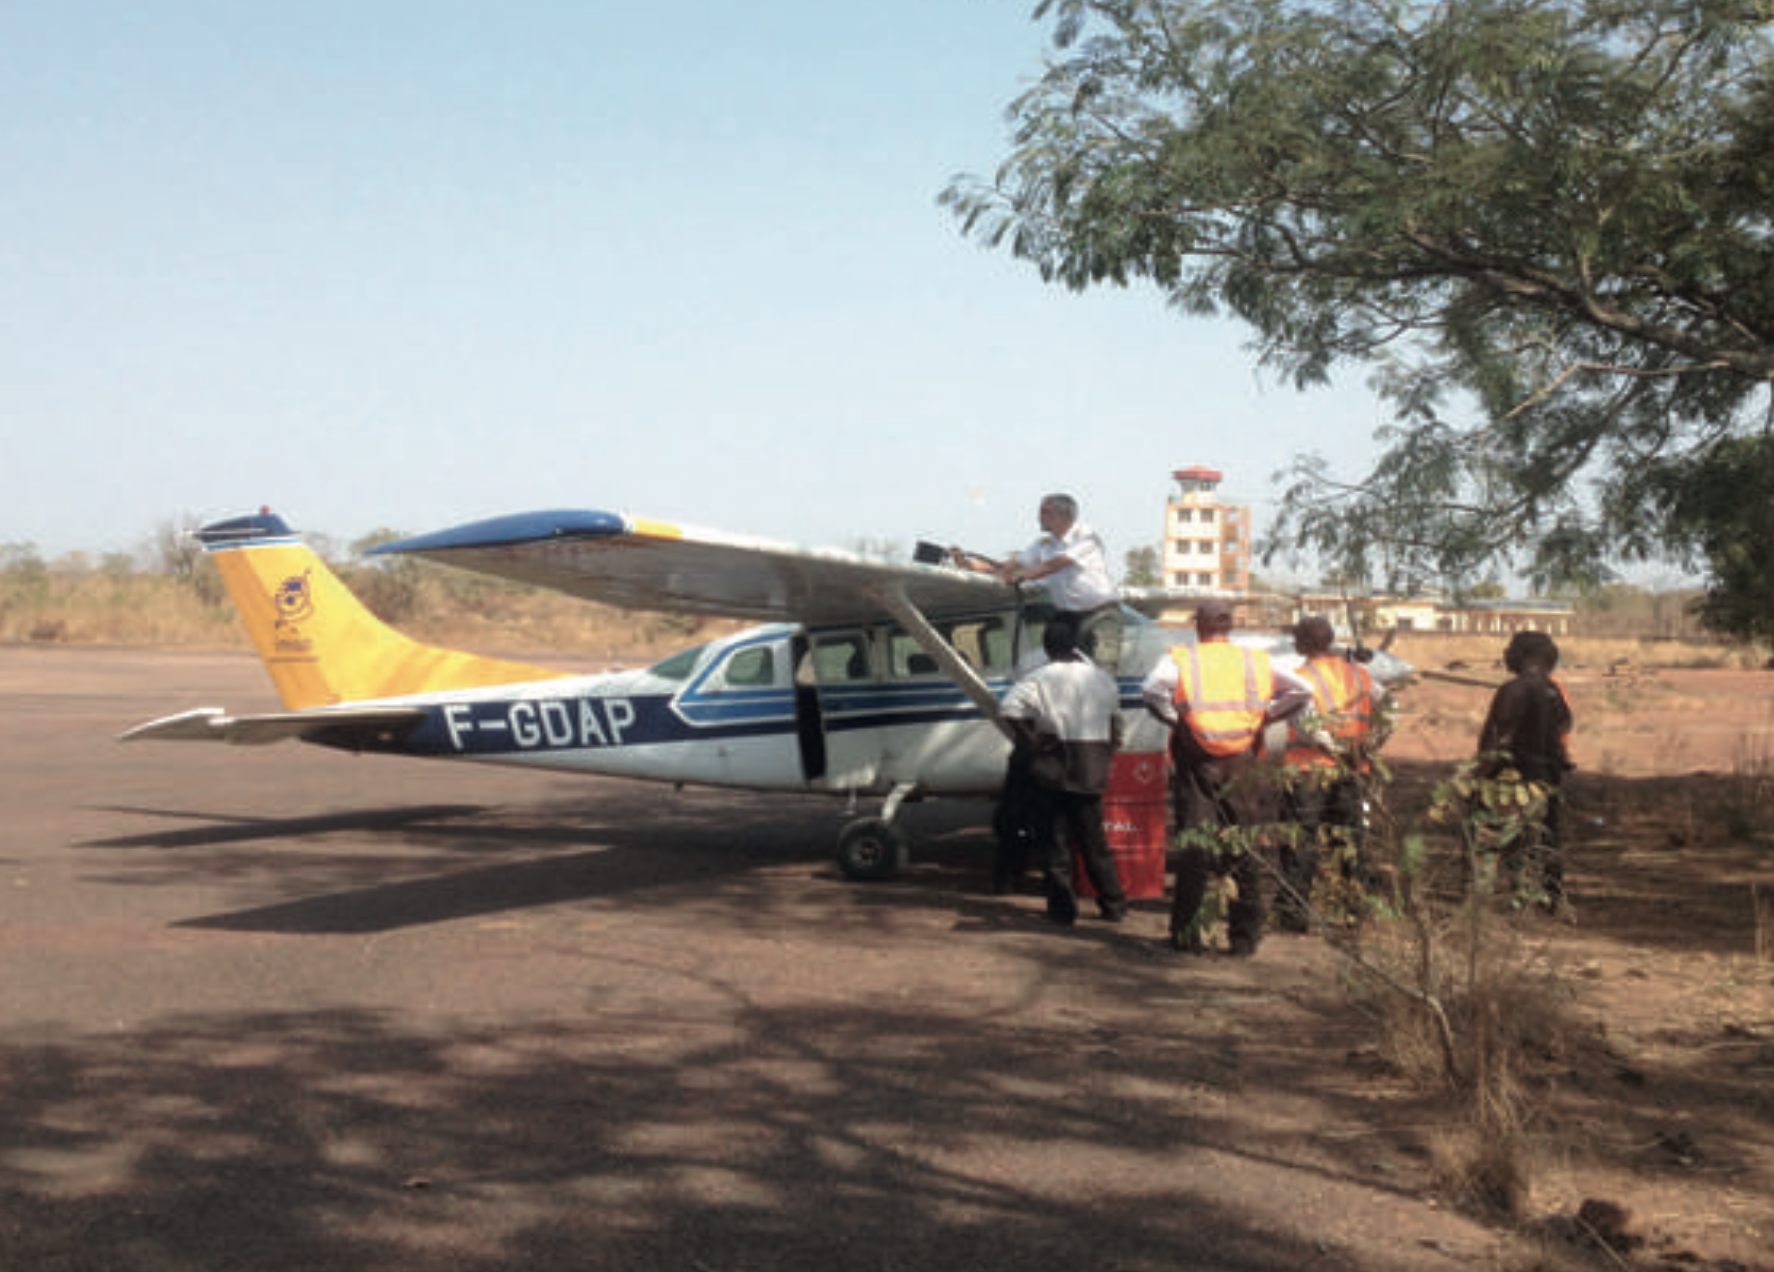 Refuel of the Cessna 206 in Guinea Conakry